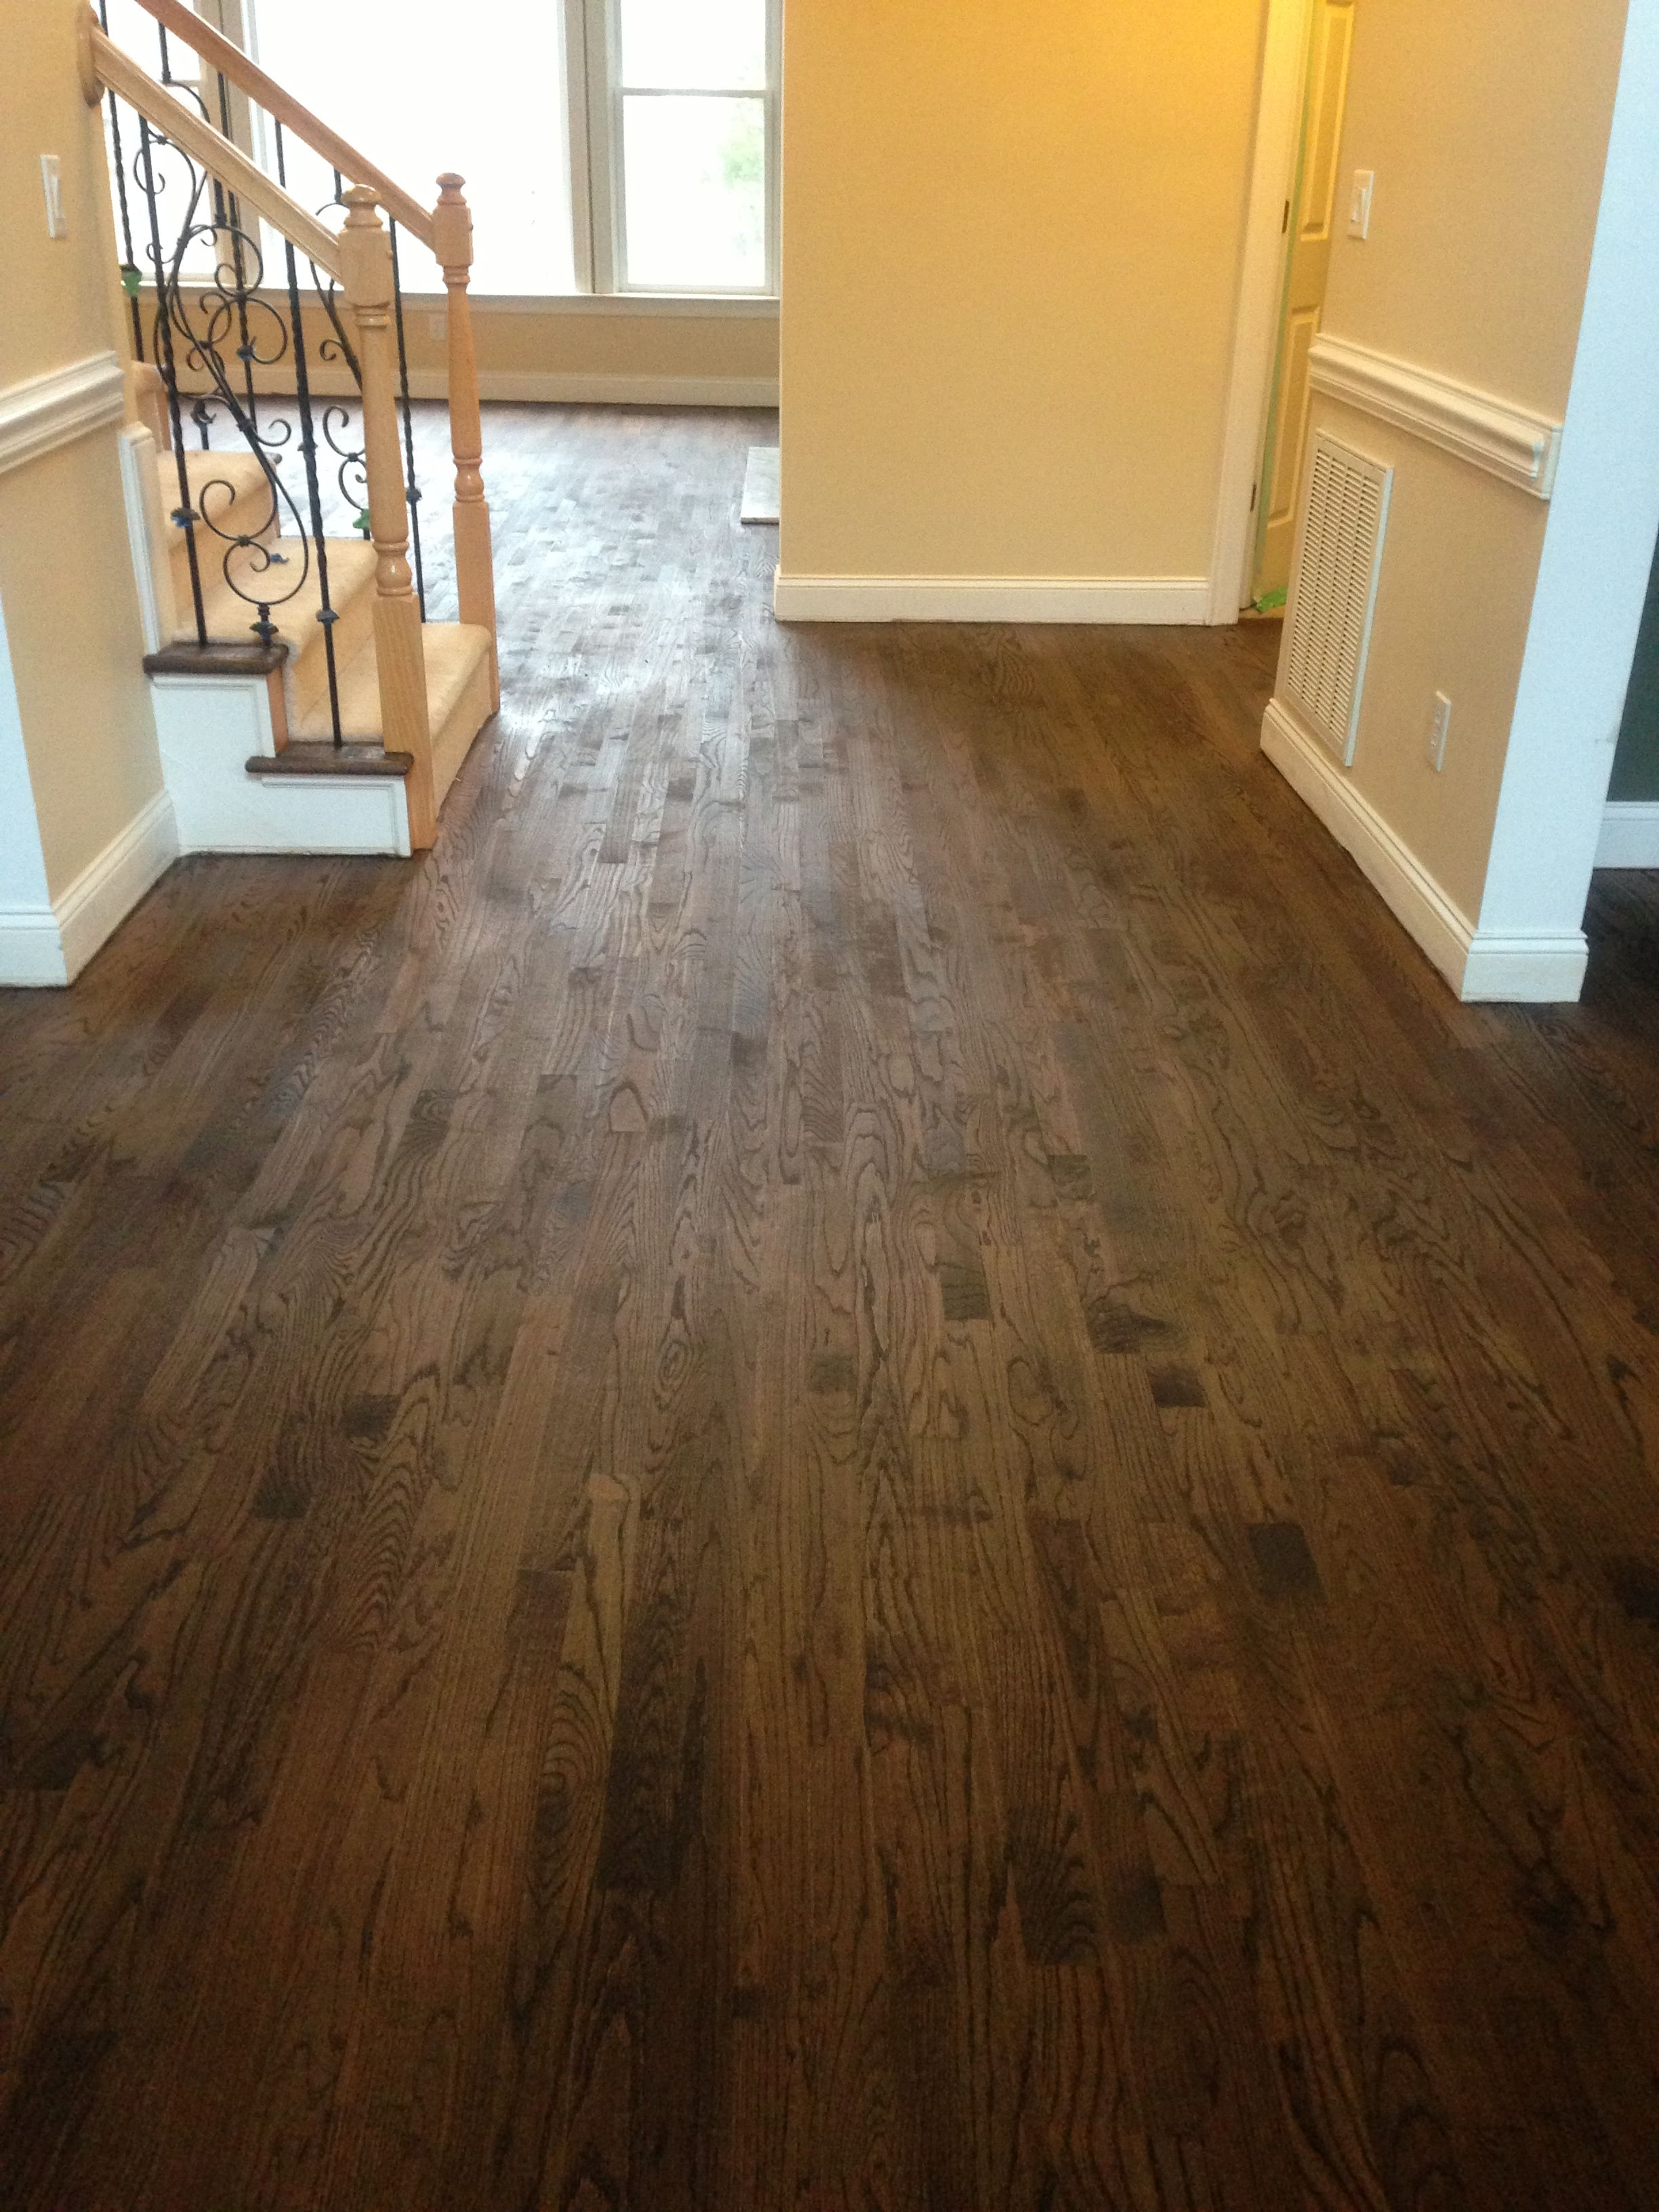 Sanded and stained red oak hardwood floors before polyurethane semi gloss mix of Minwax Dark